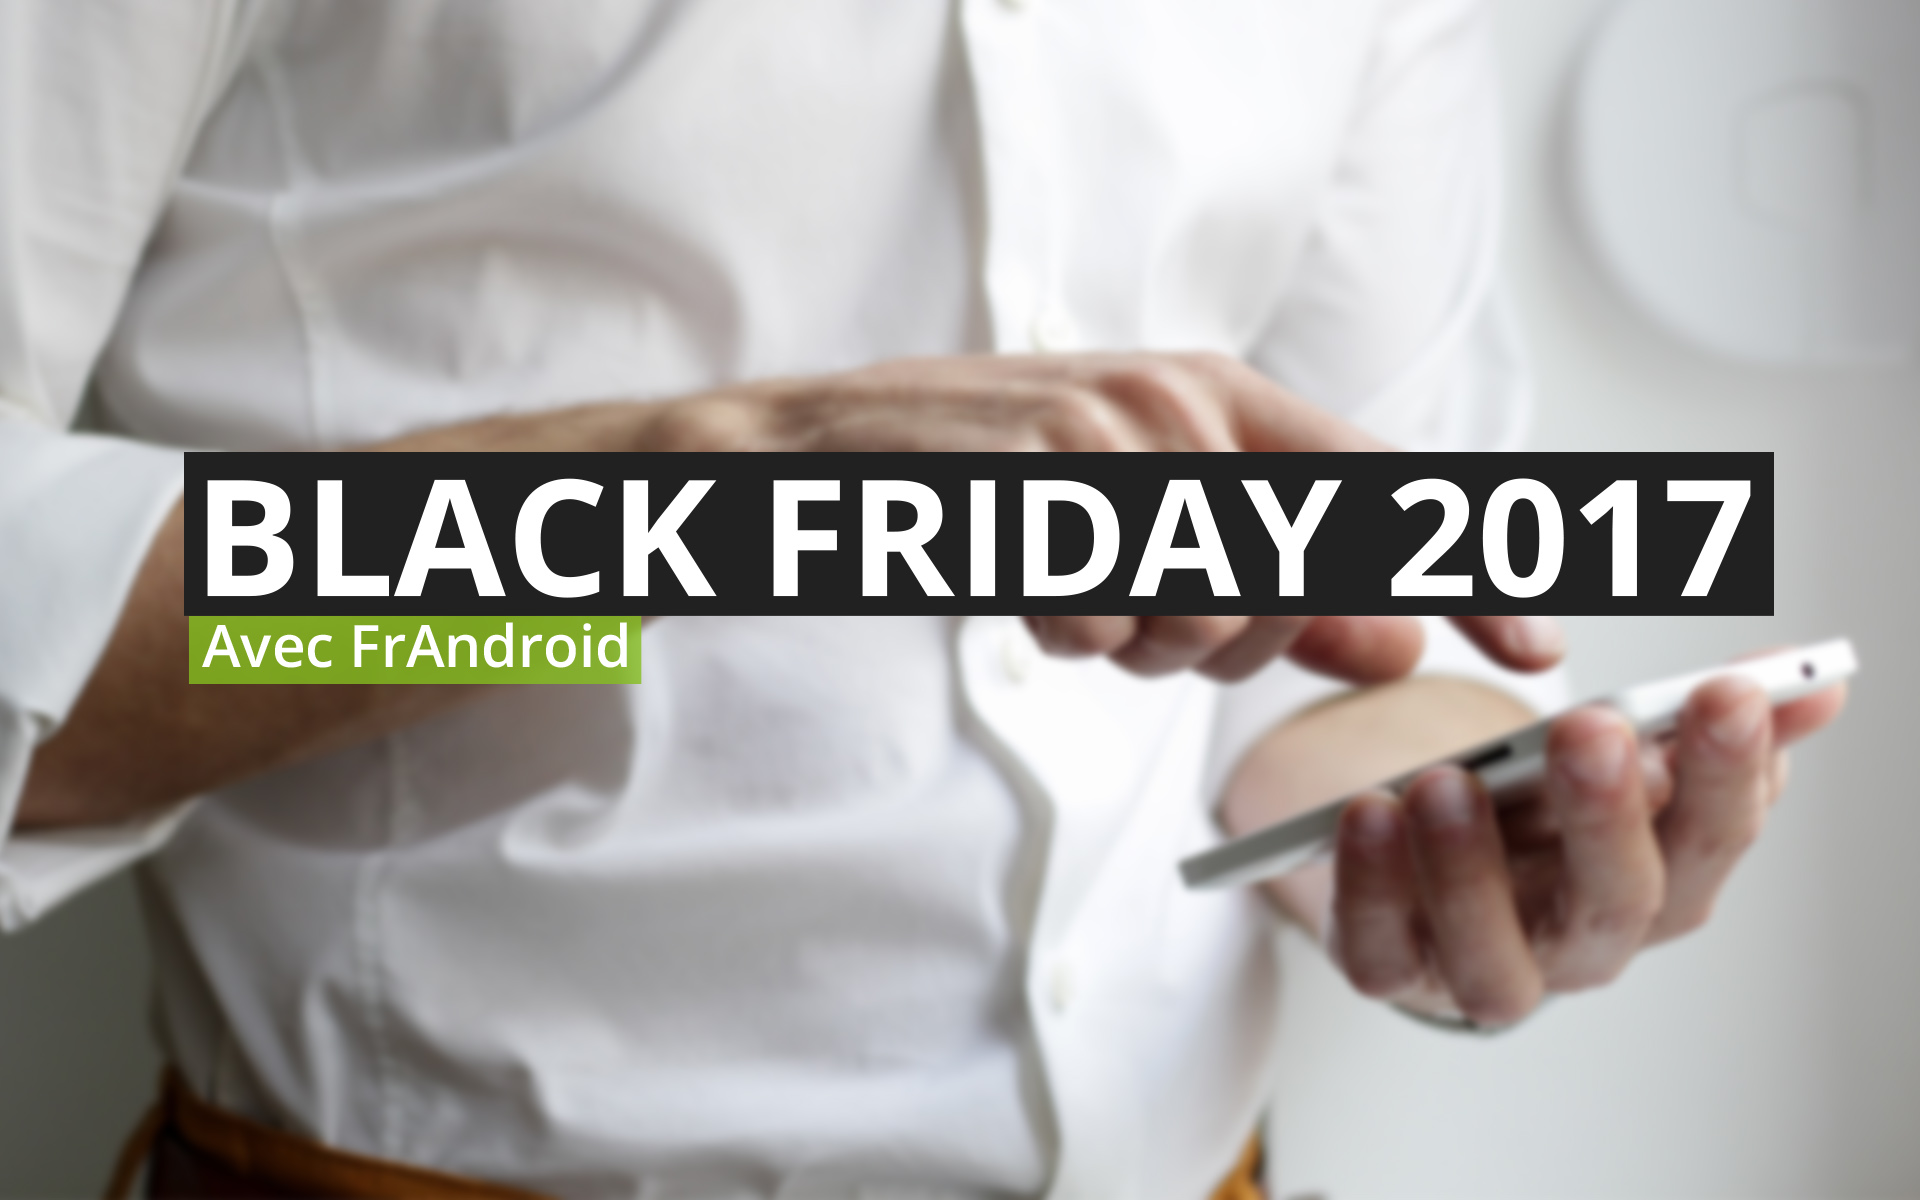 tude frandroid le smartphone la star du black friday. Black Bedroom Furniture Sets. Home Design Ideas